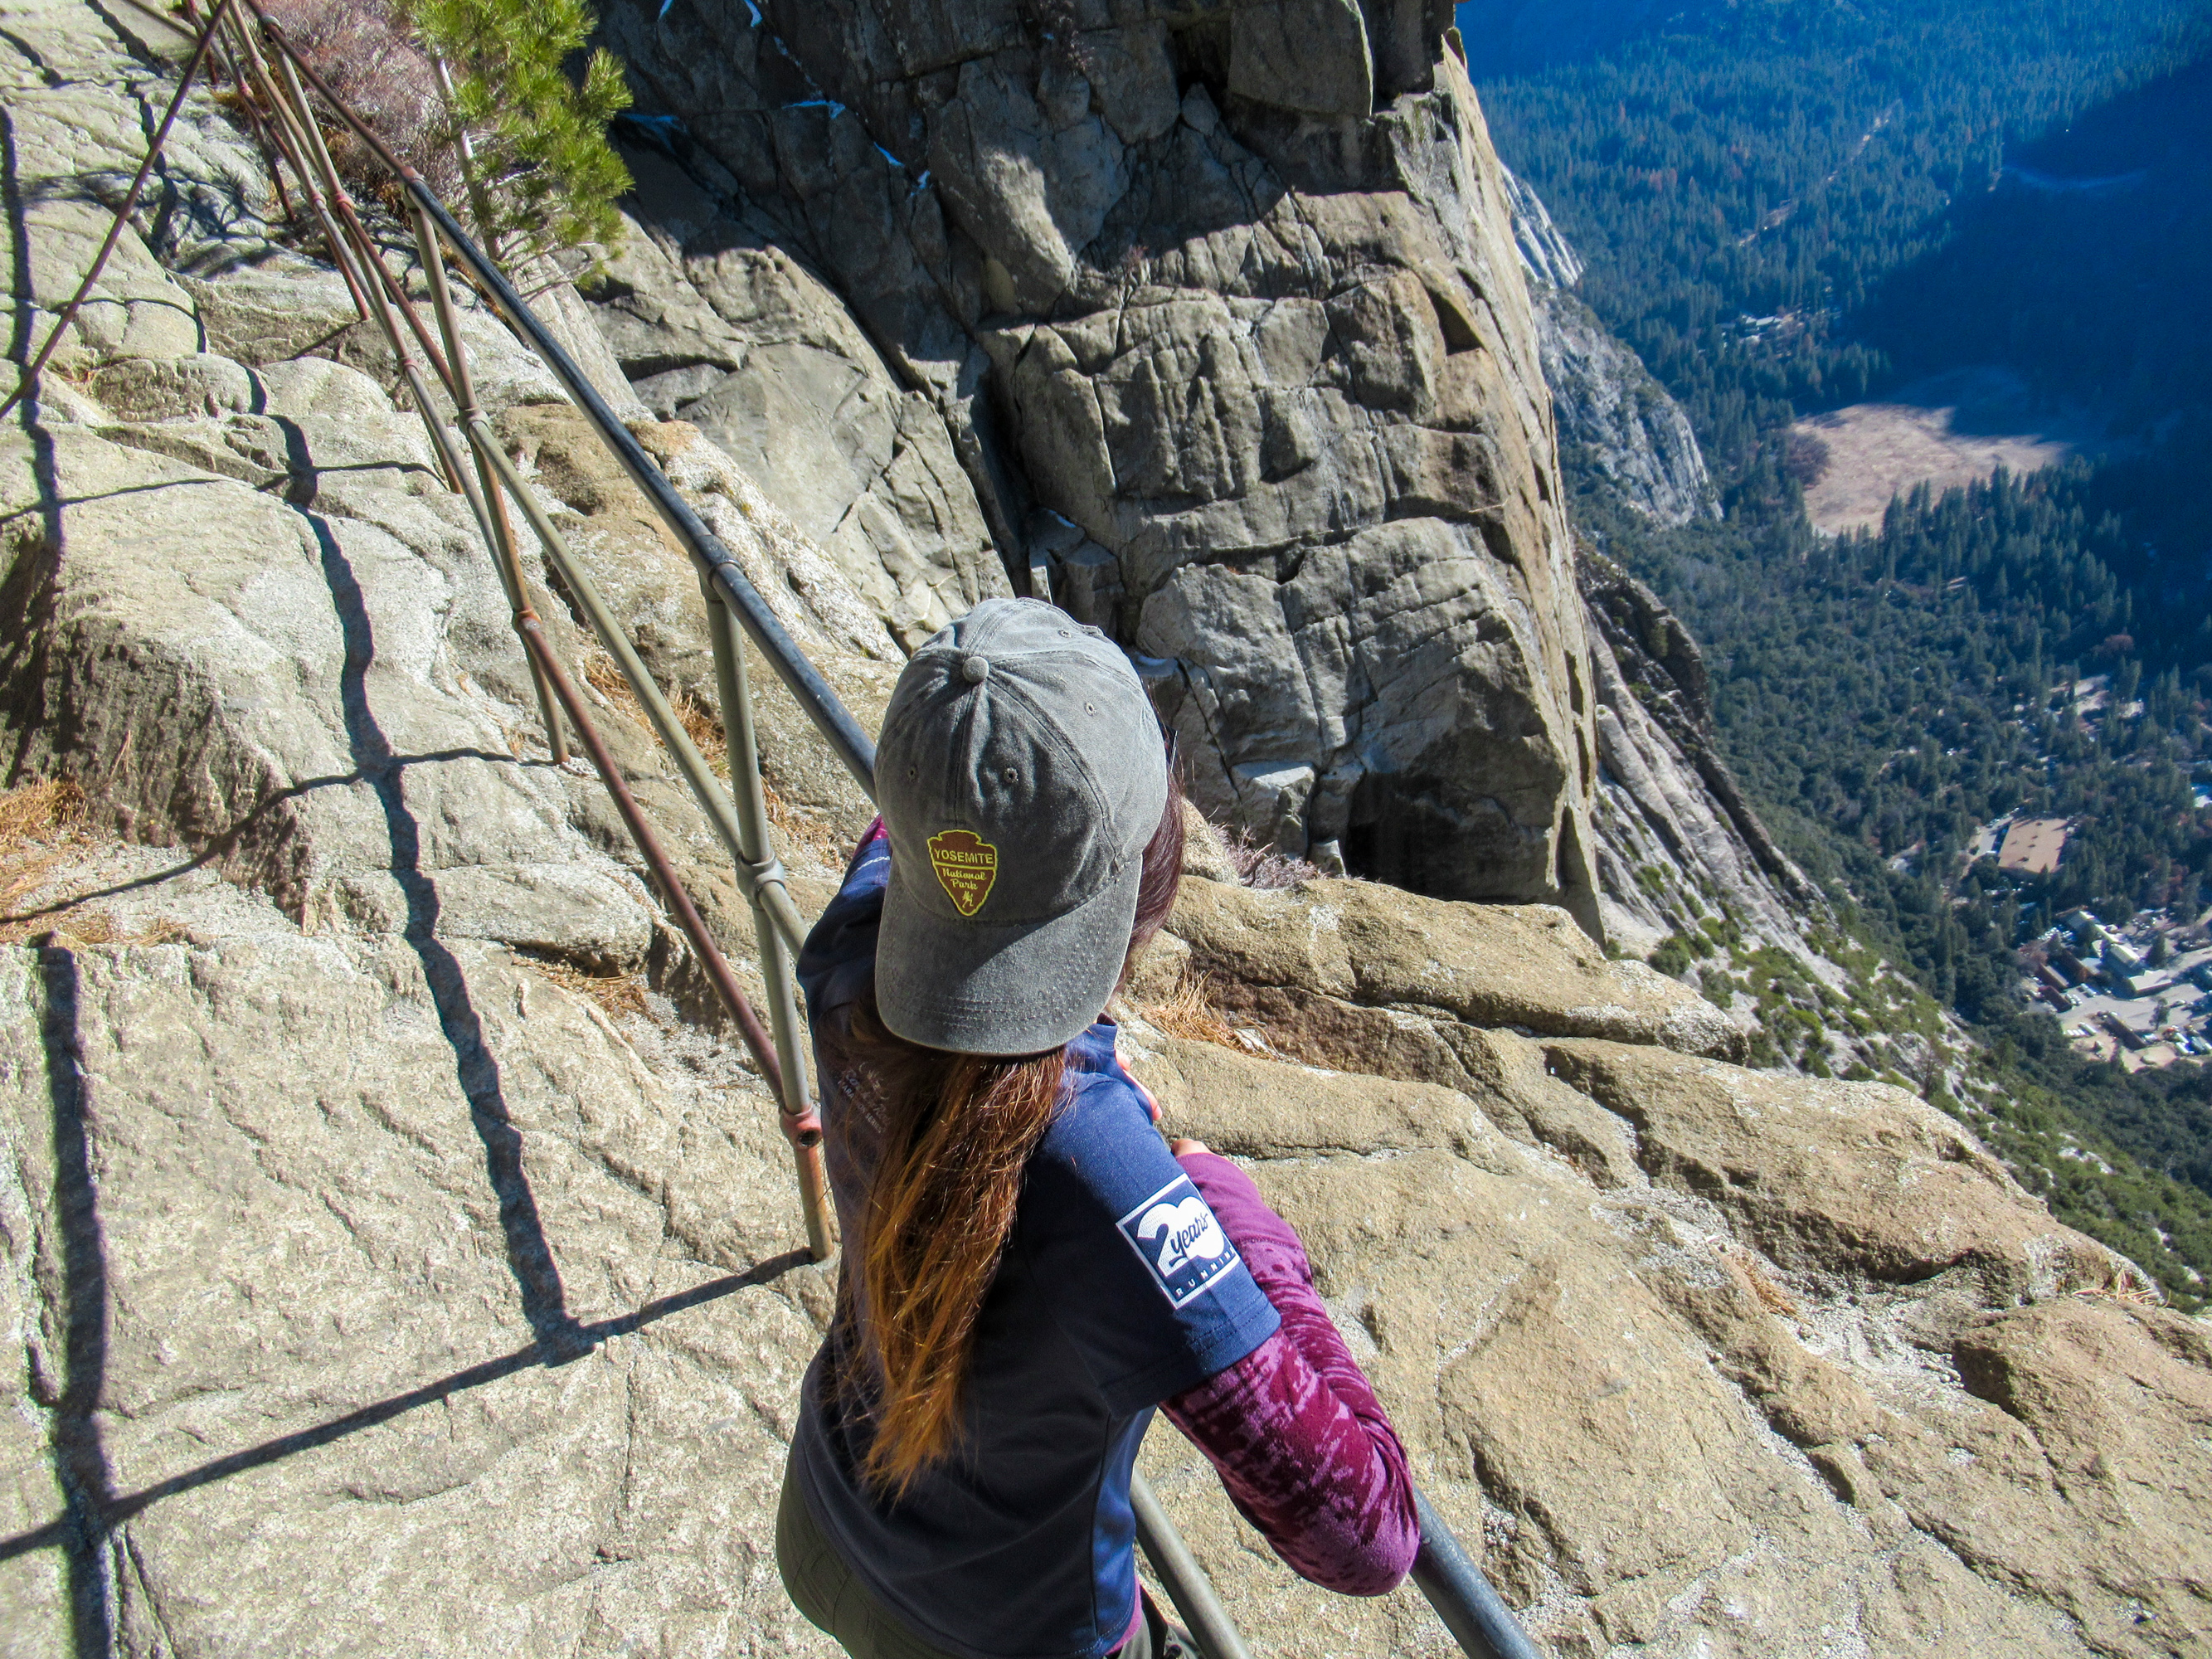 Resting on a railing above Yosemite Valley.